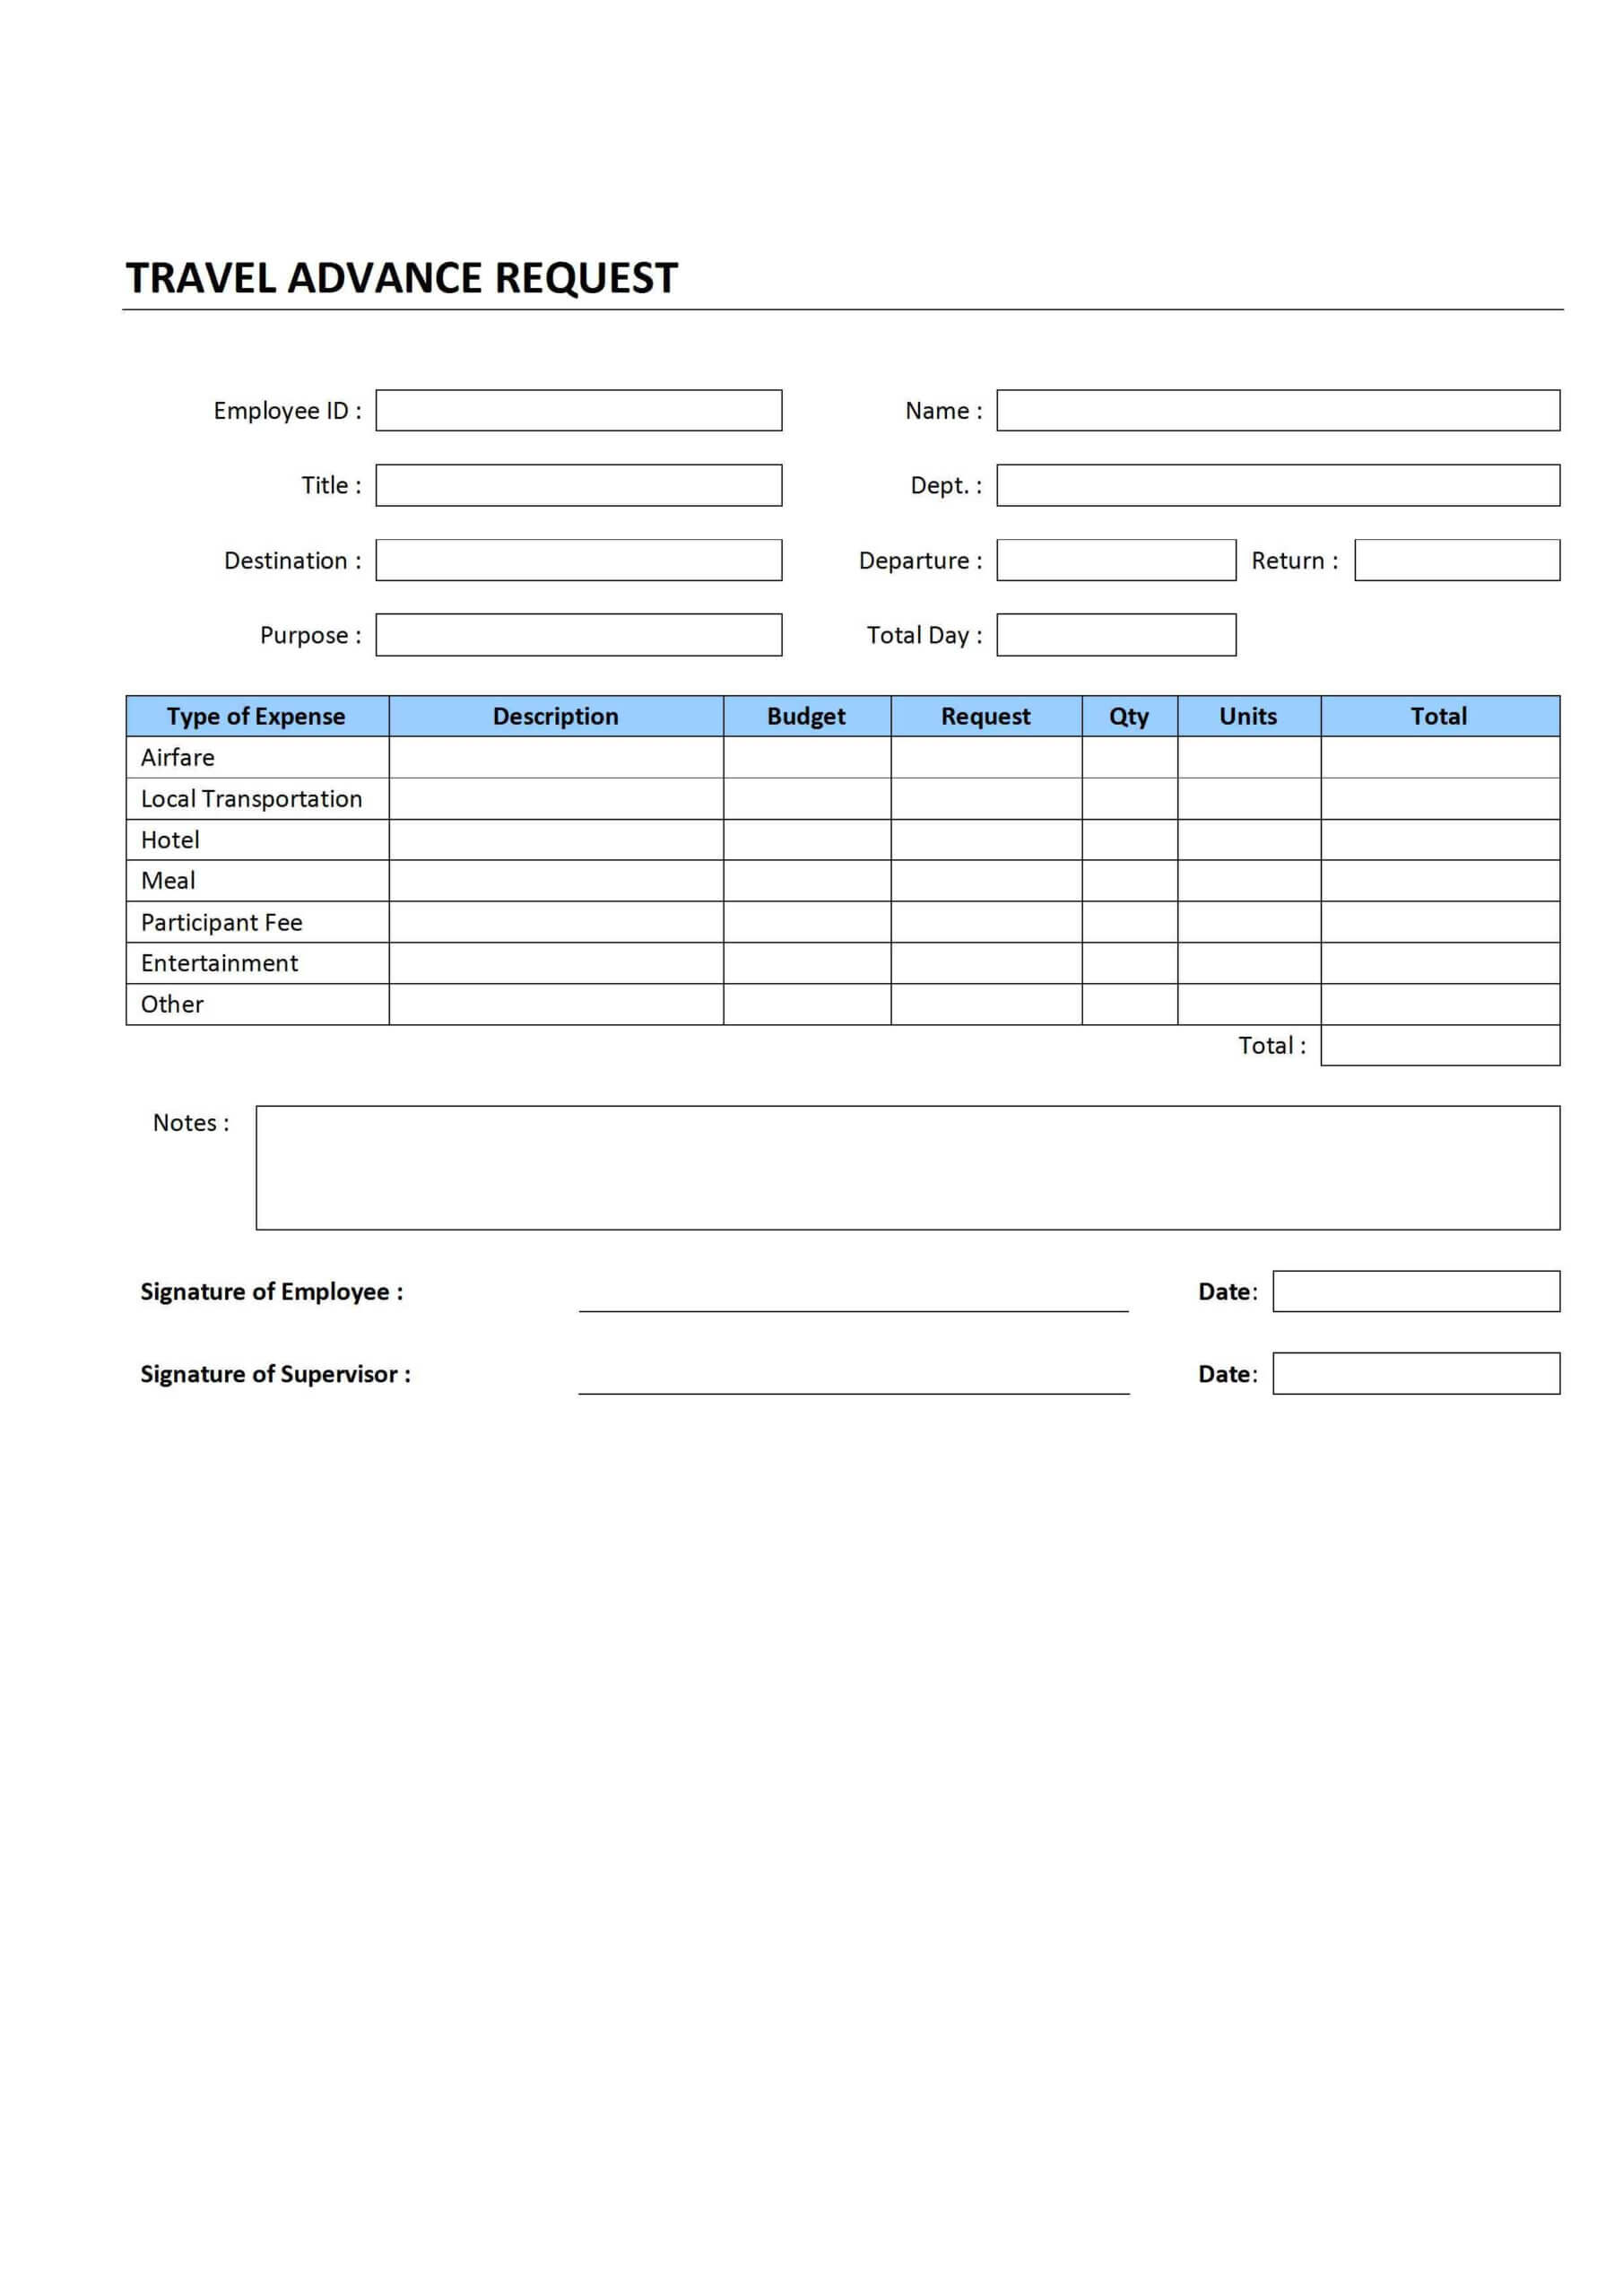 5 Best Photos Of Sample Travel Request Form - Travel Request Inside Travel Request Form Template Word